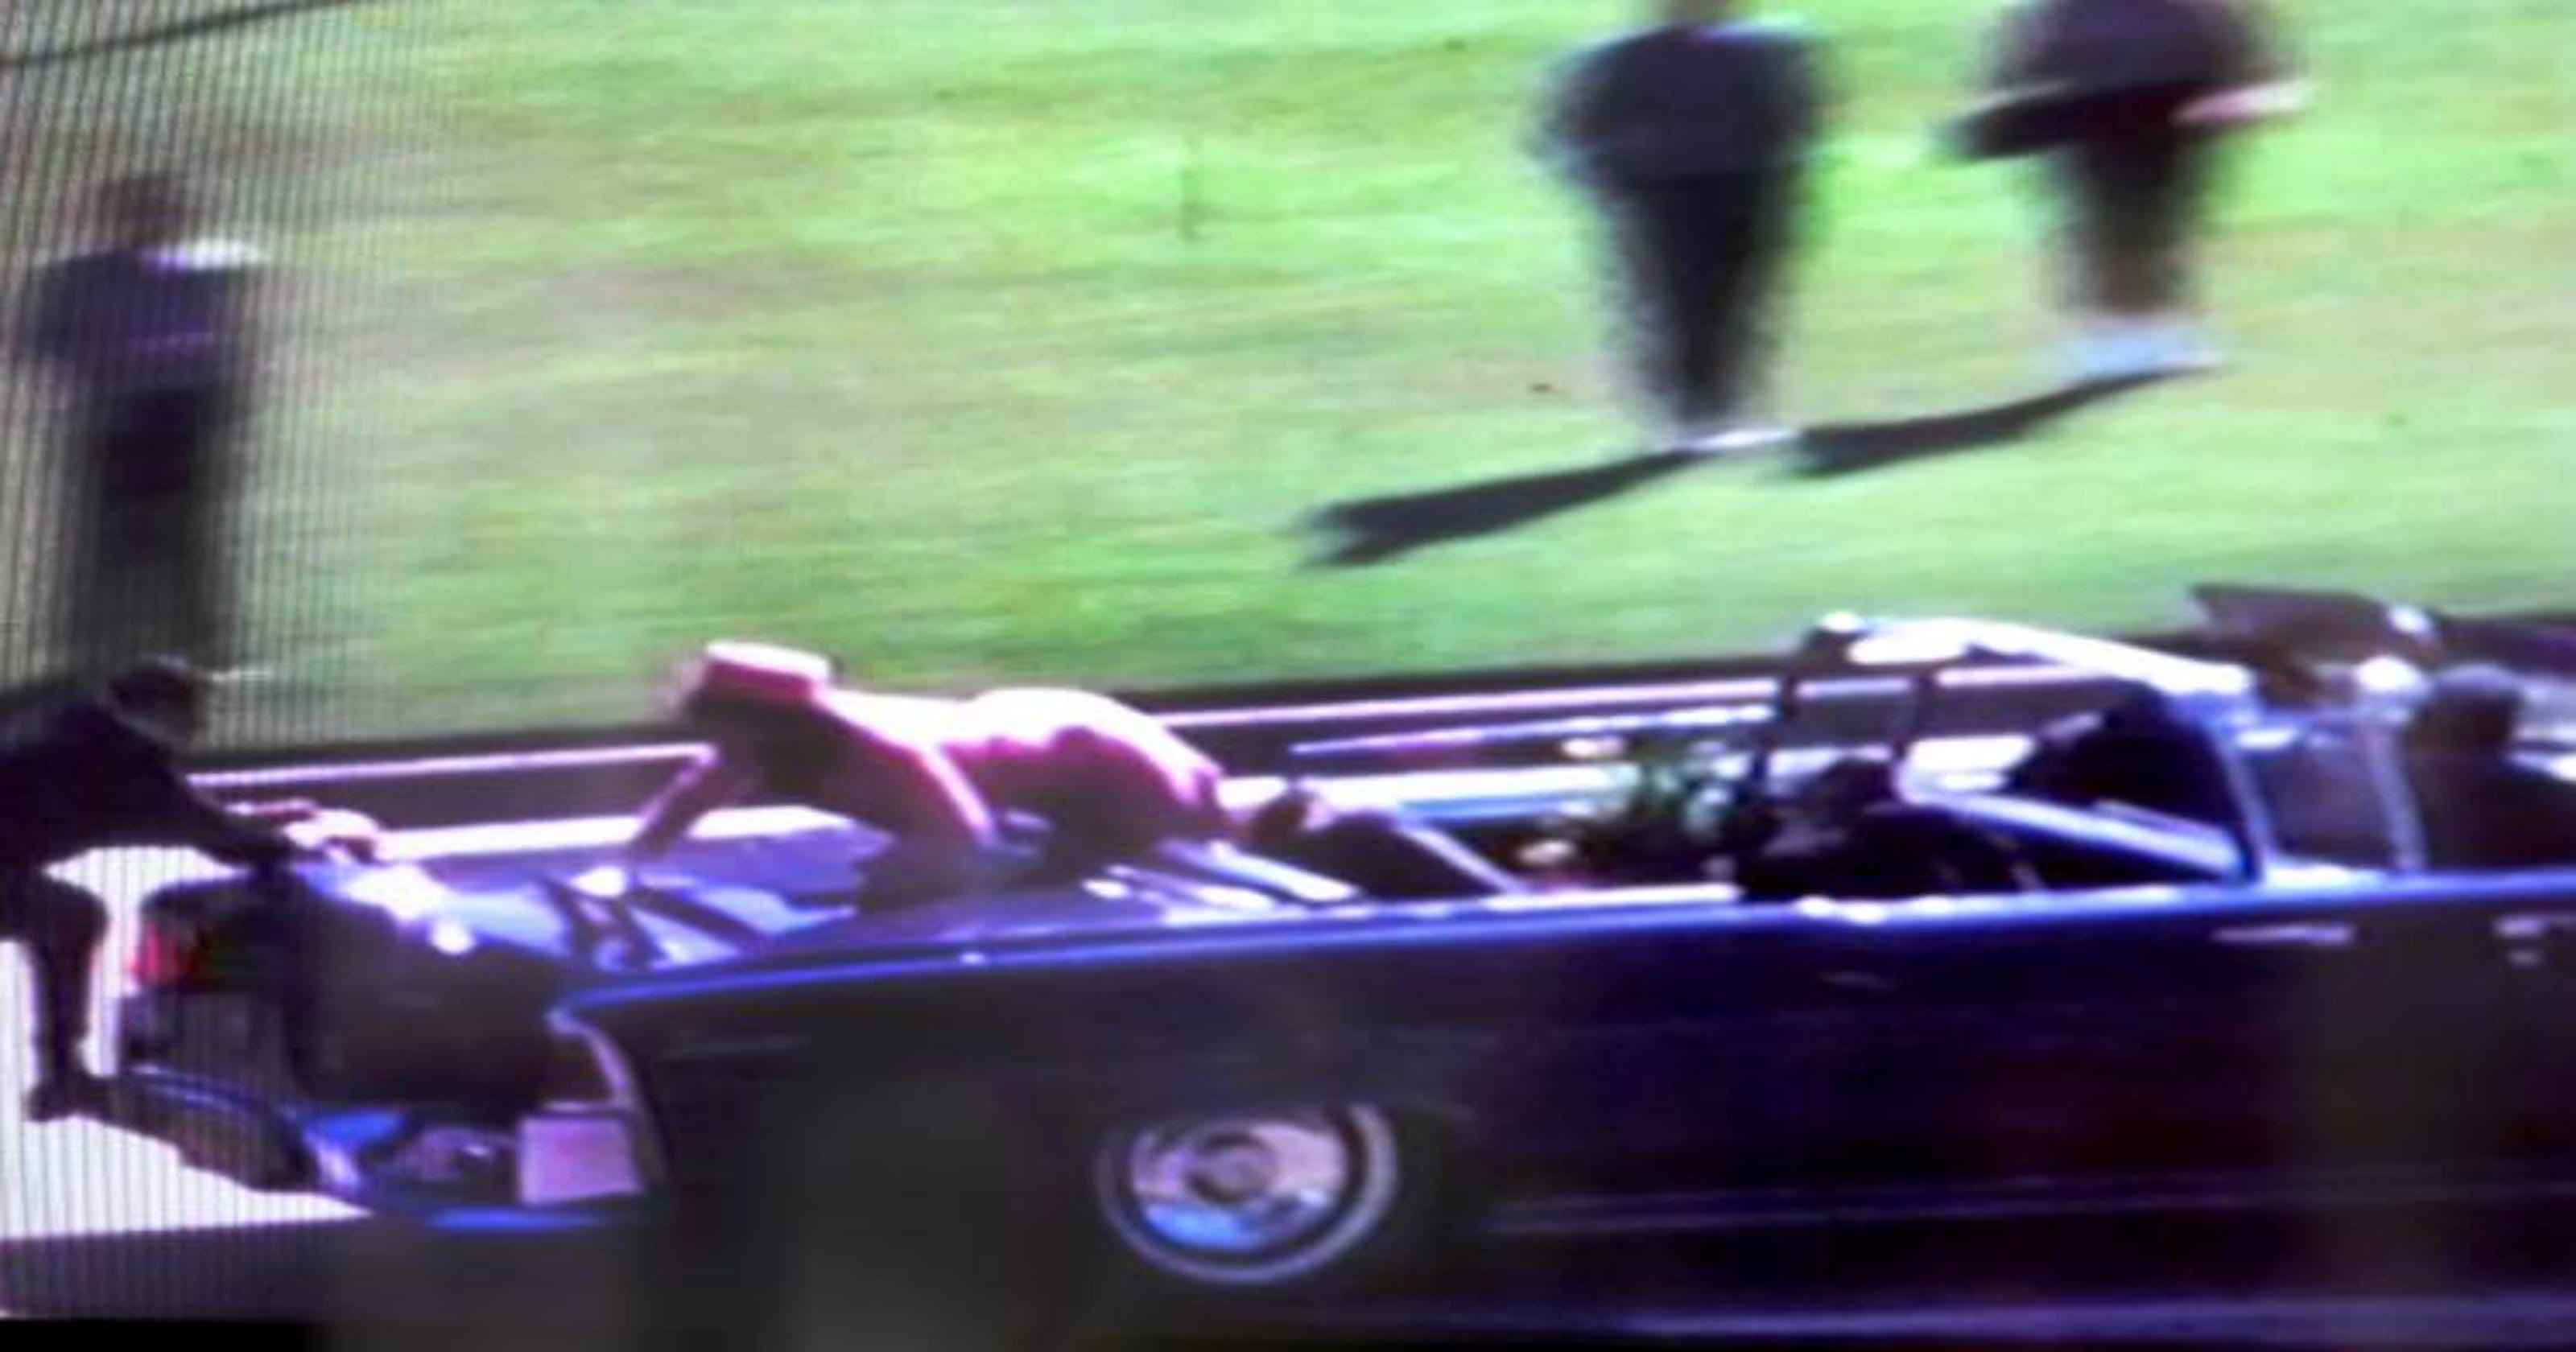 Kodak researchers helped analyze JFK assassination evidence